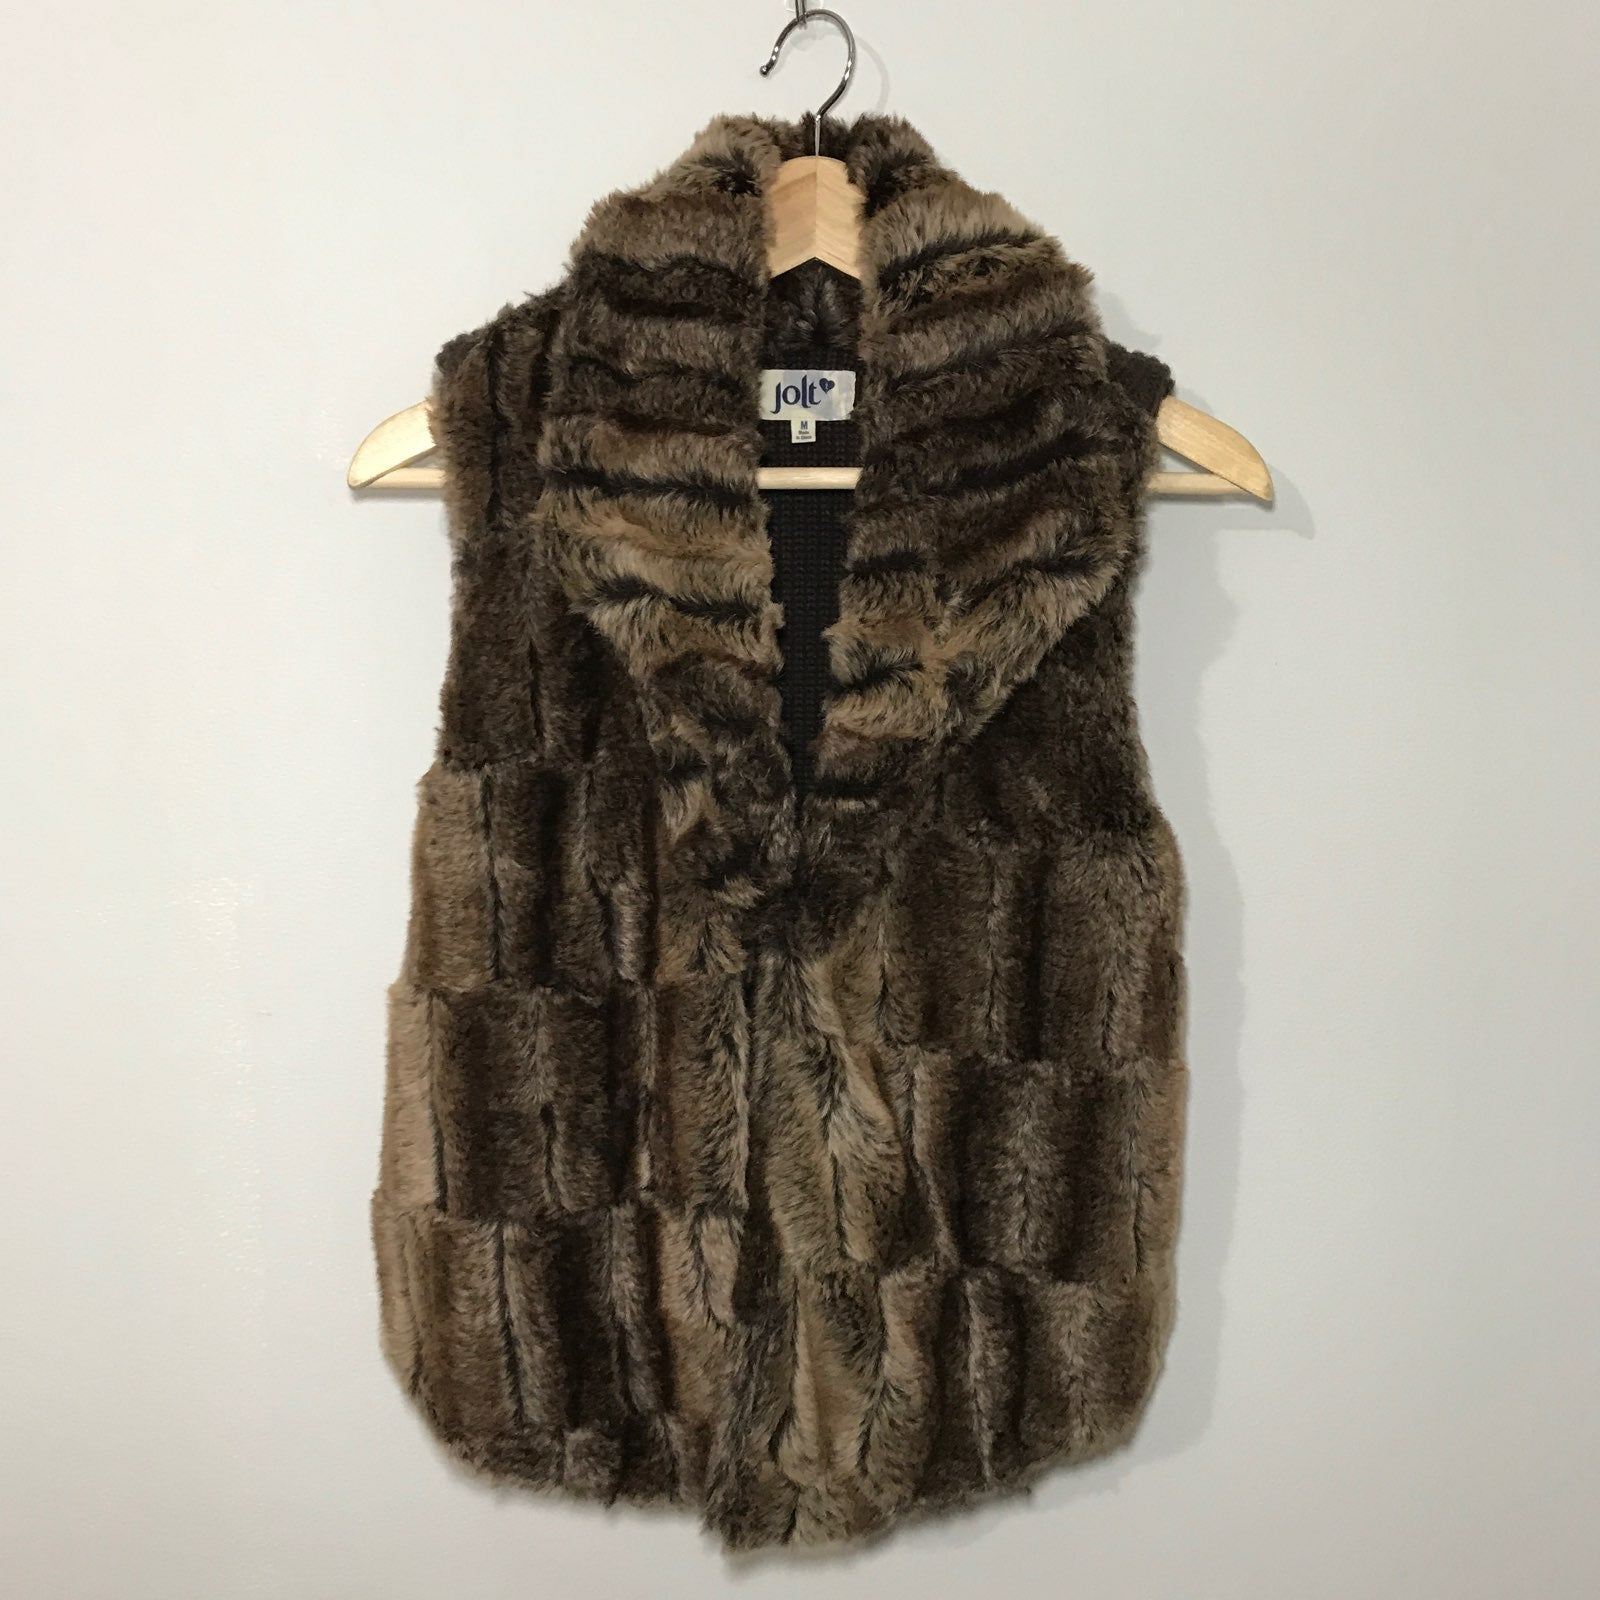 Jolt Faux Fur Vest size medium